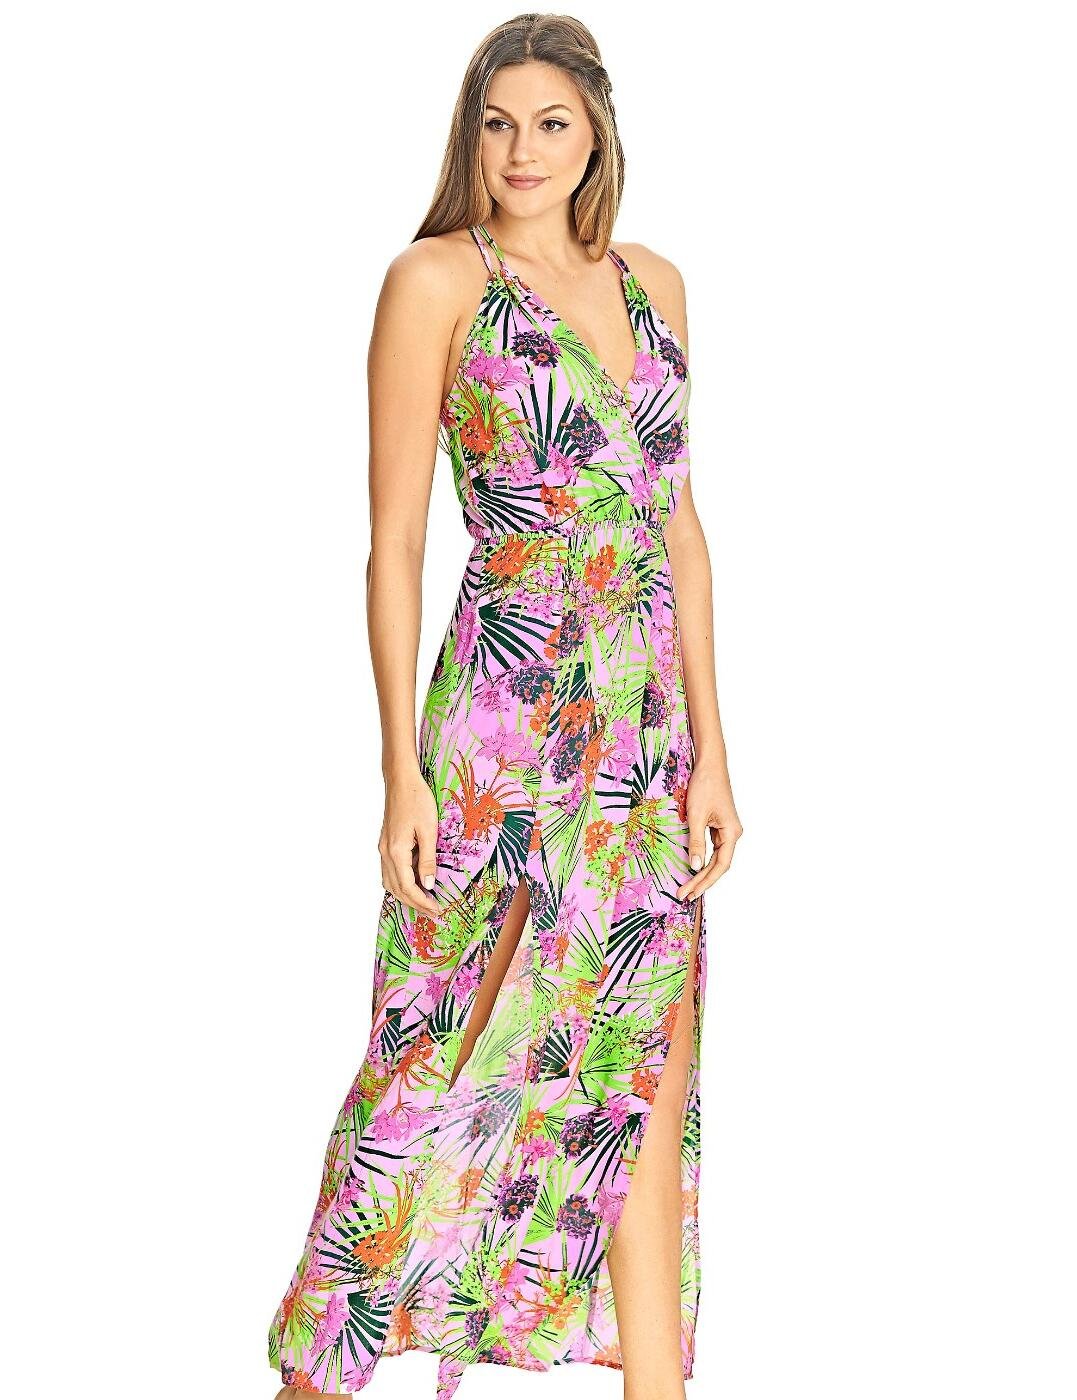 4028 Freya Lost In Paradise Maxi Beach Dress - 4028 Pink